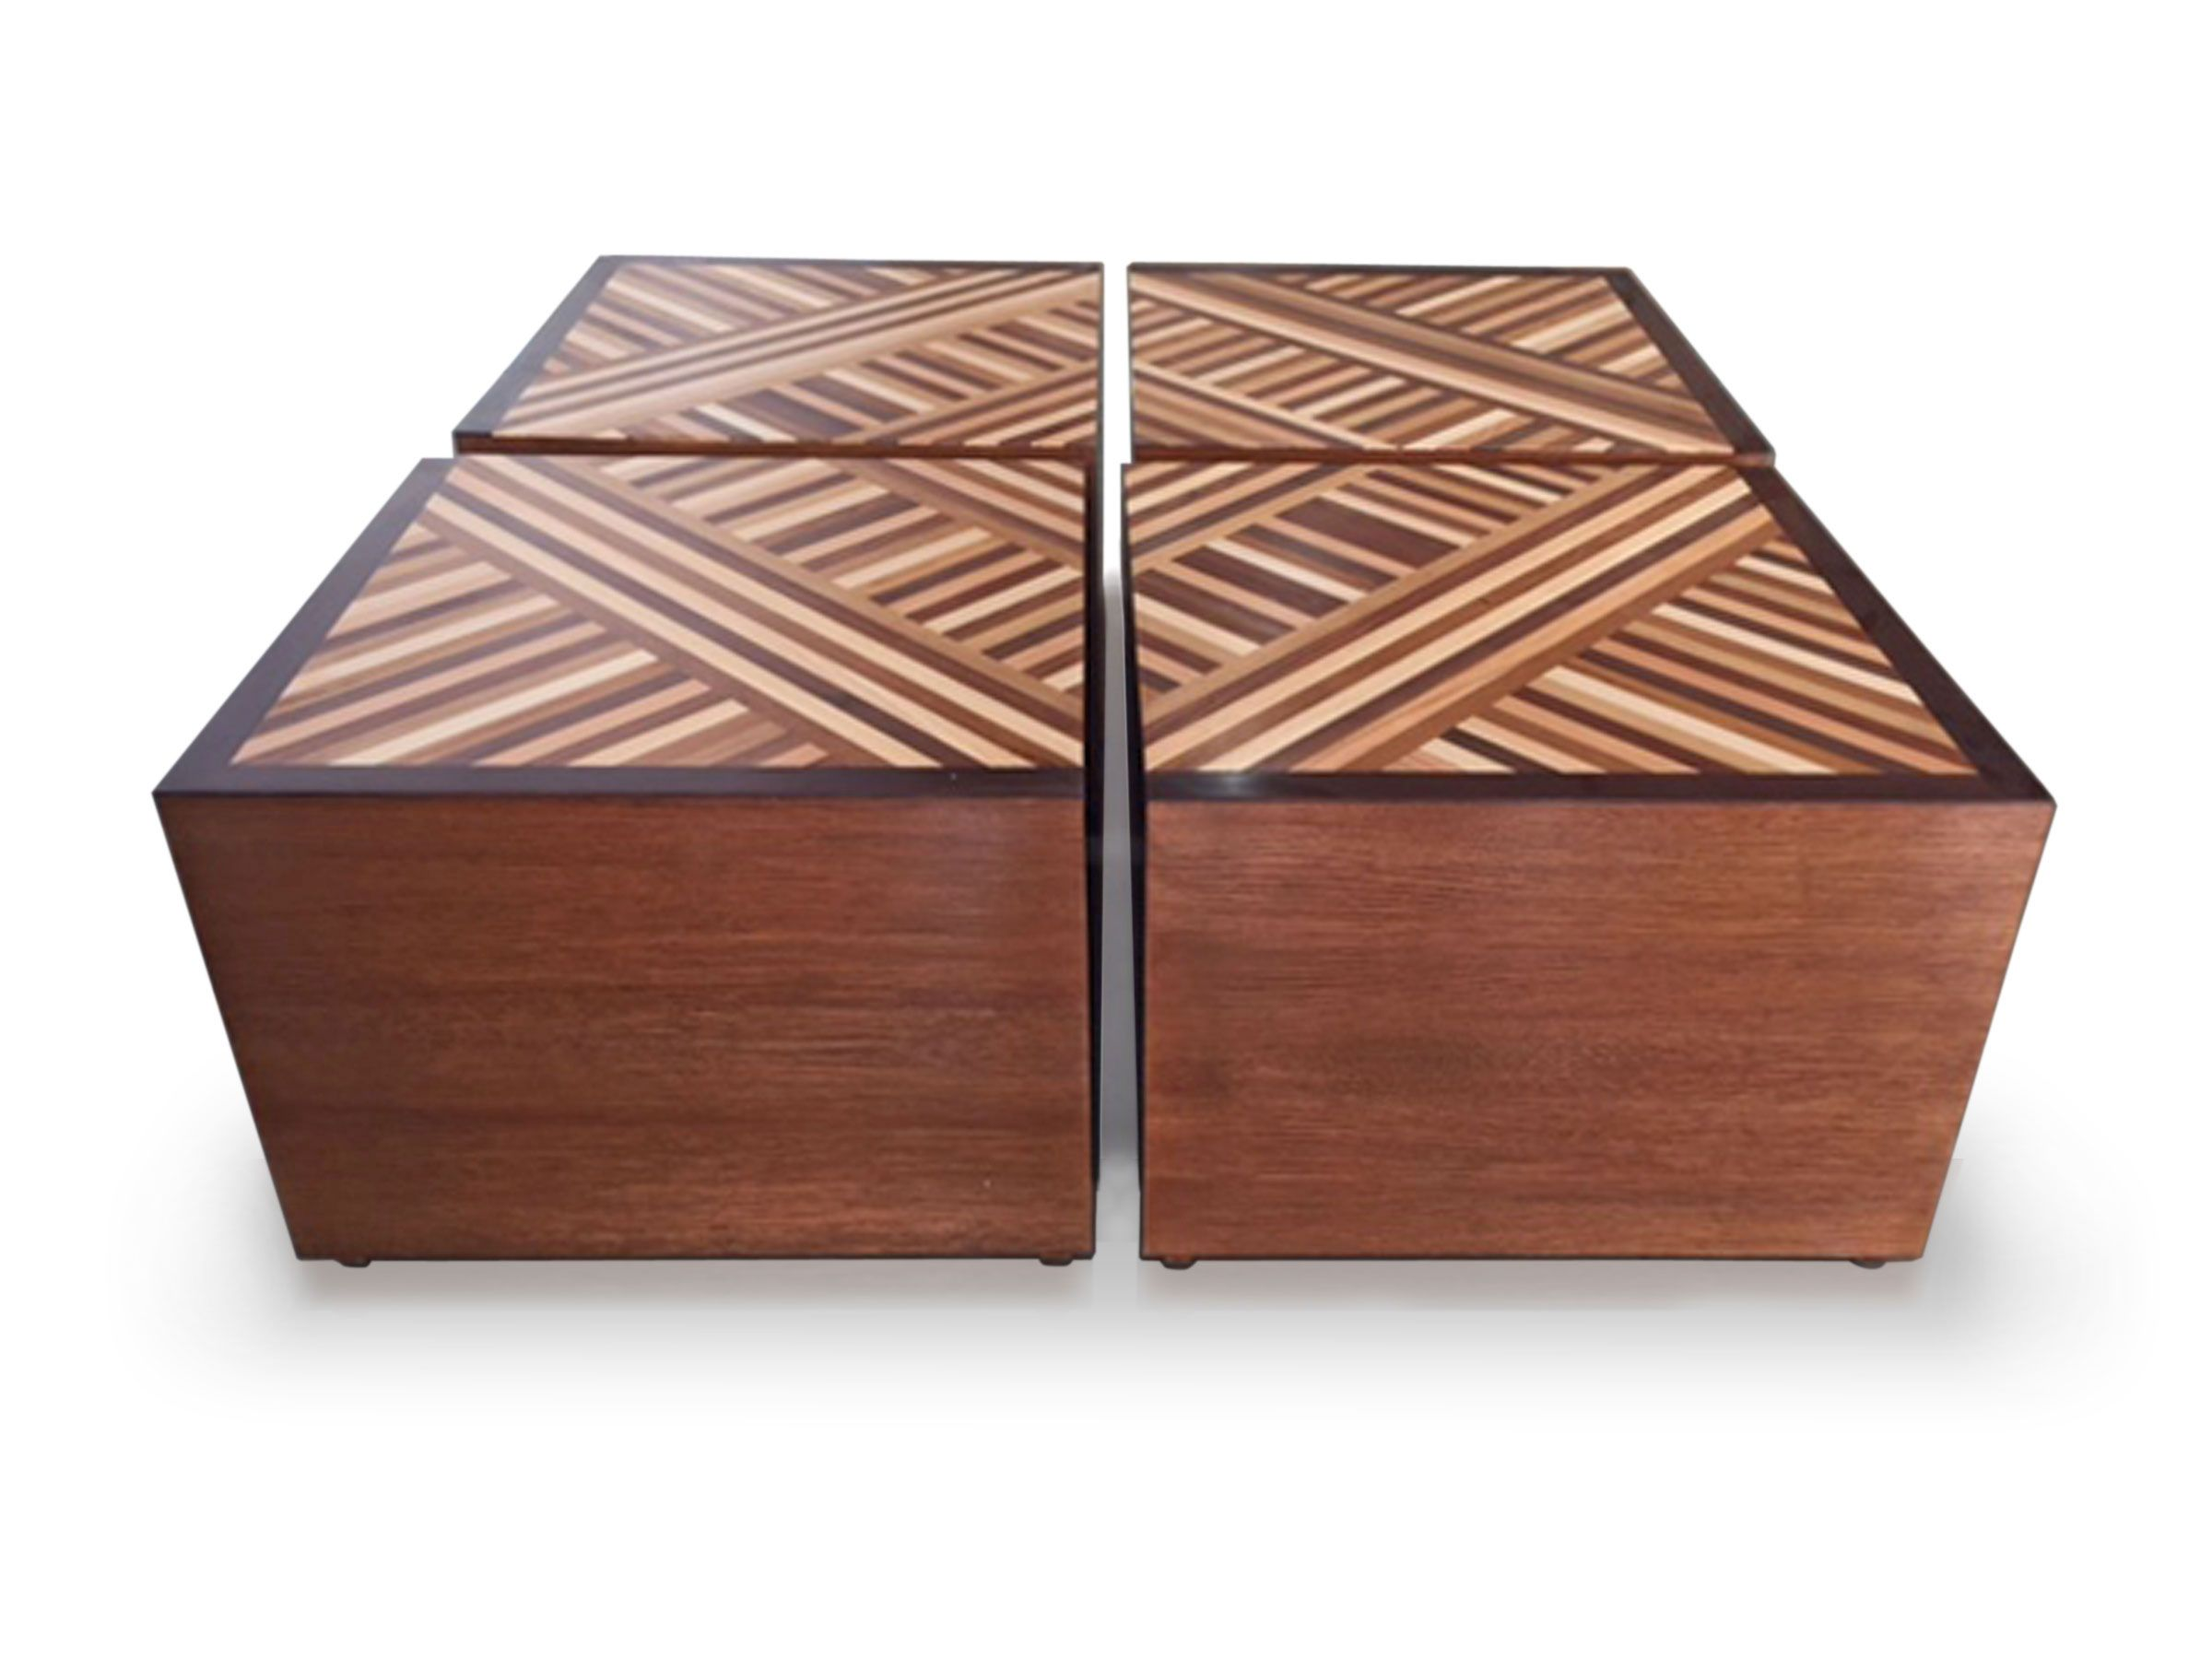 HOUSTON COFFEE TABLE Modular Coffee Table Comes In Four Parts. Oak Veneer  With Inlayed Top Featuring Different Timbers.